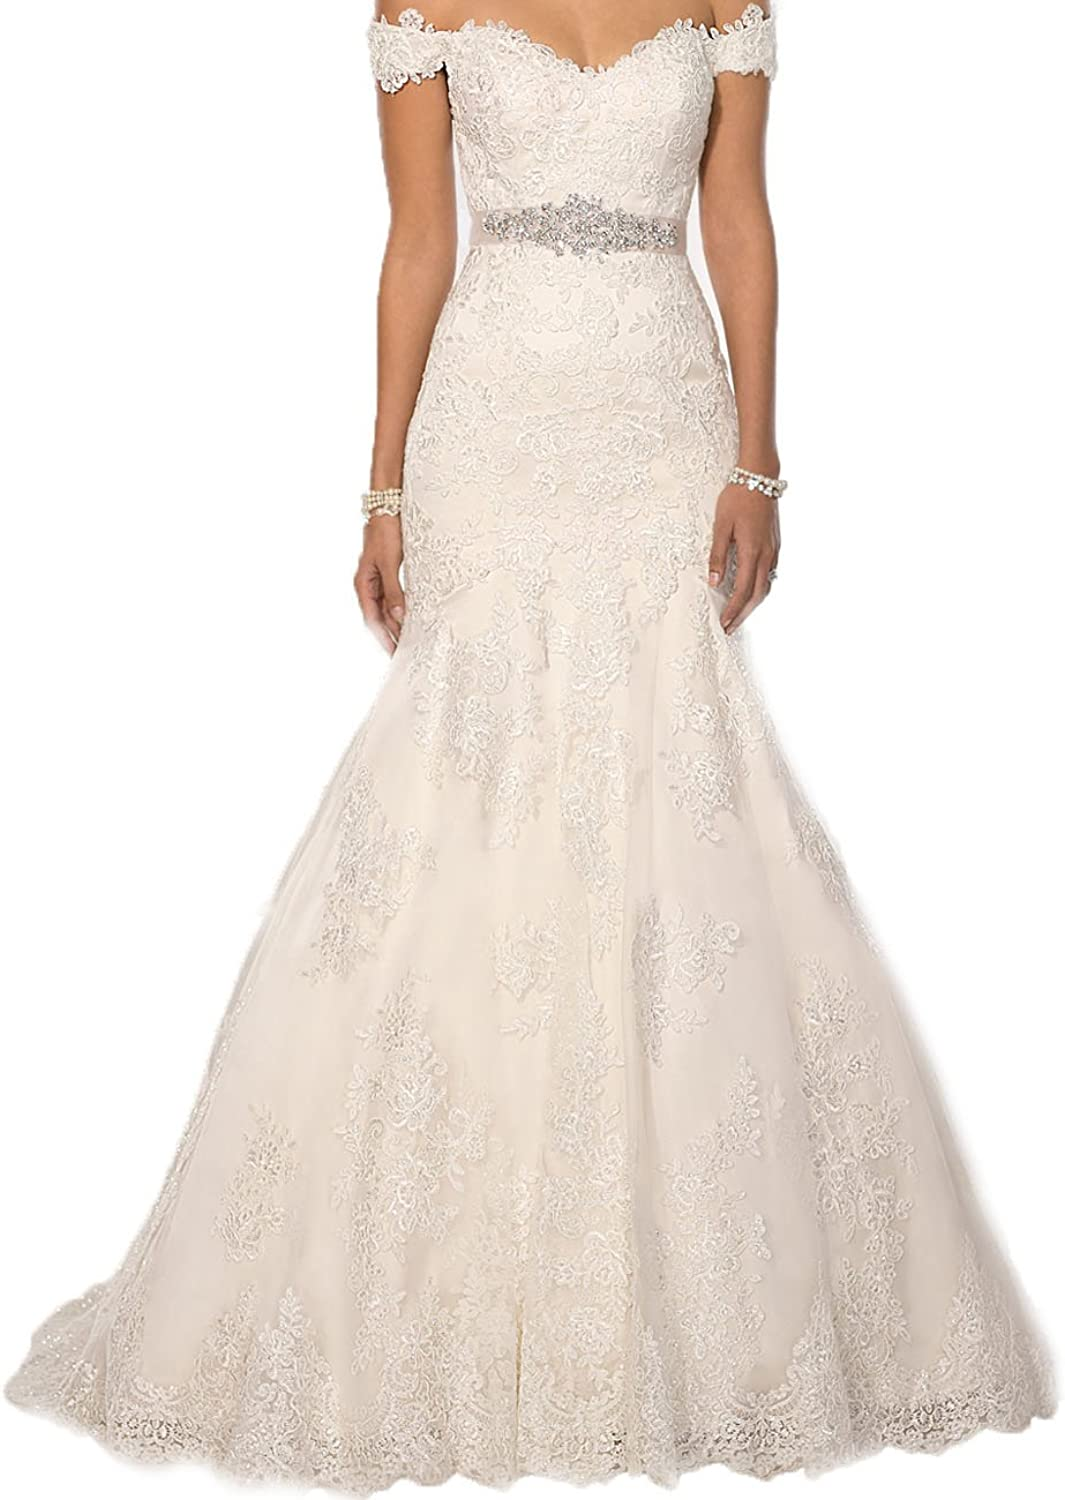 Cdress Off Shoulder Lace Mermaid Wedding Dresses Long Bridal Gowns with Beaded Sashes